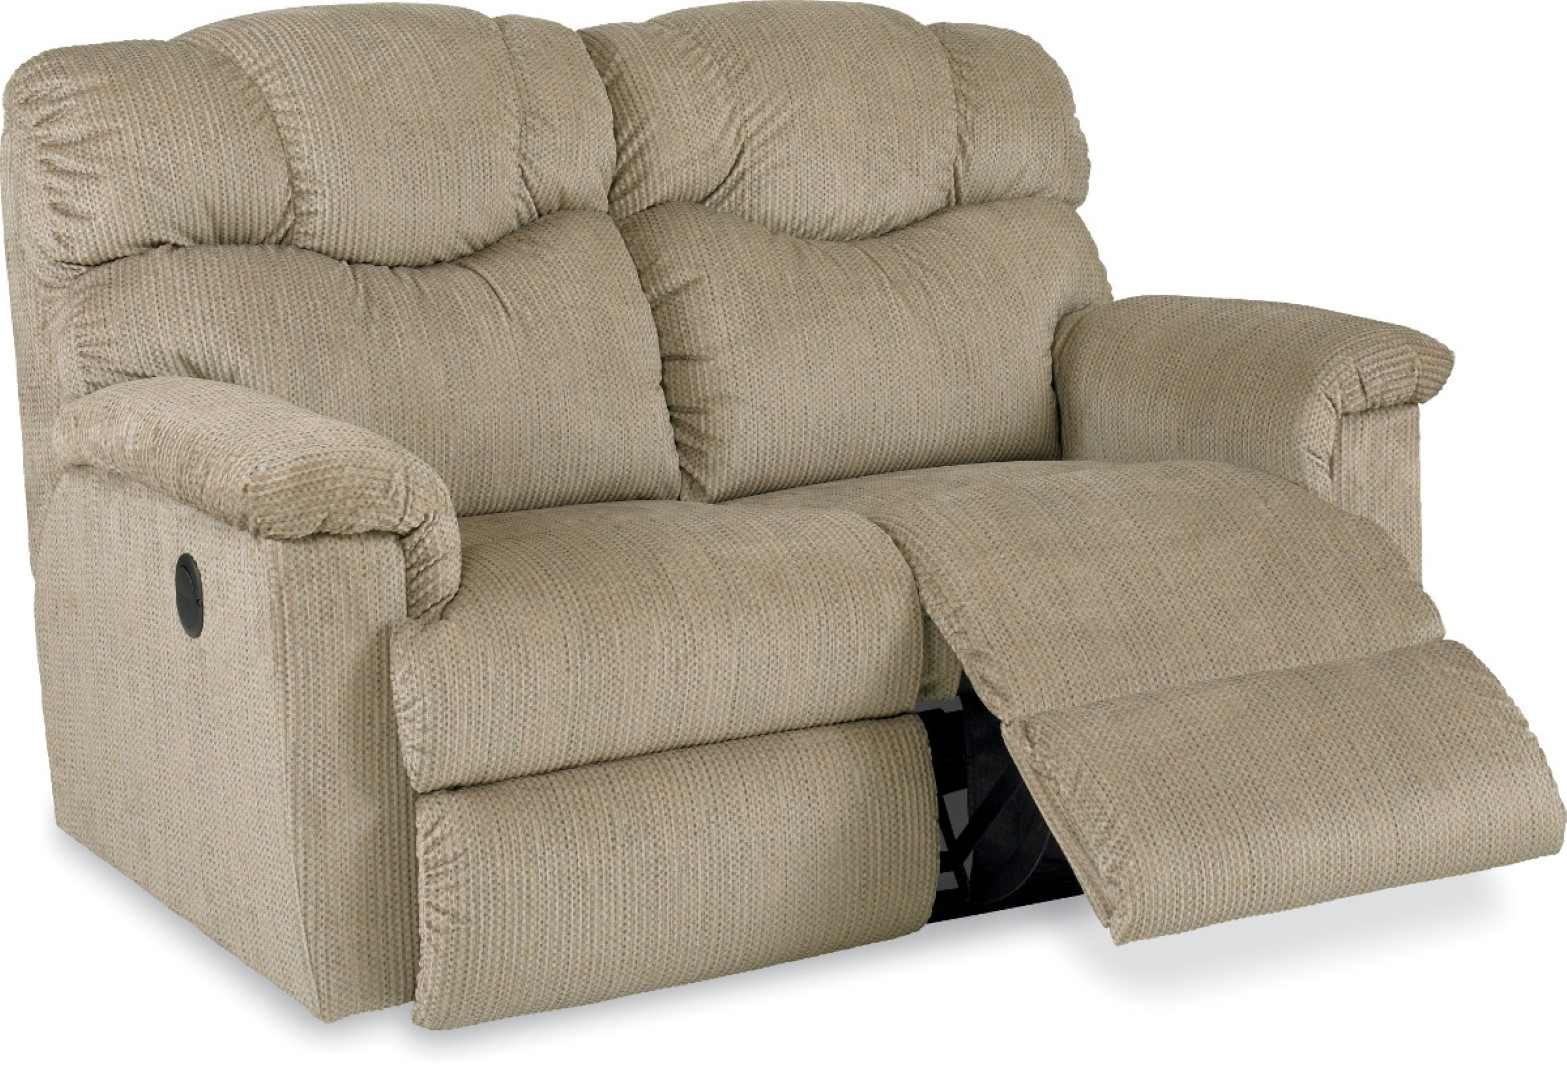 Lazy Boy Reclining Sofa With Console Leather Double Recliner Sofa Uk Reclining With Fold Down